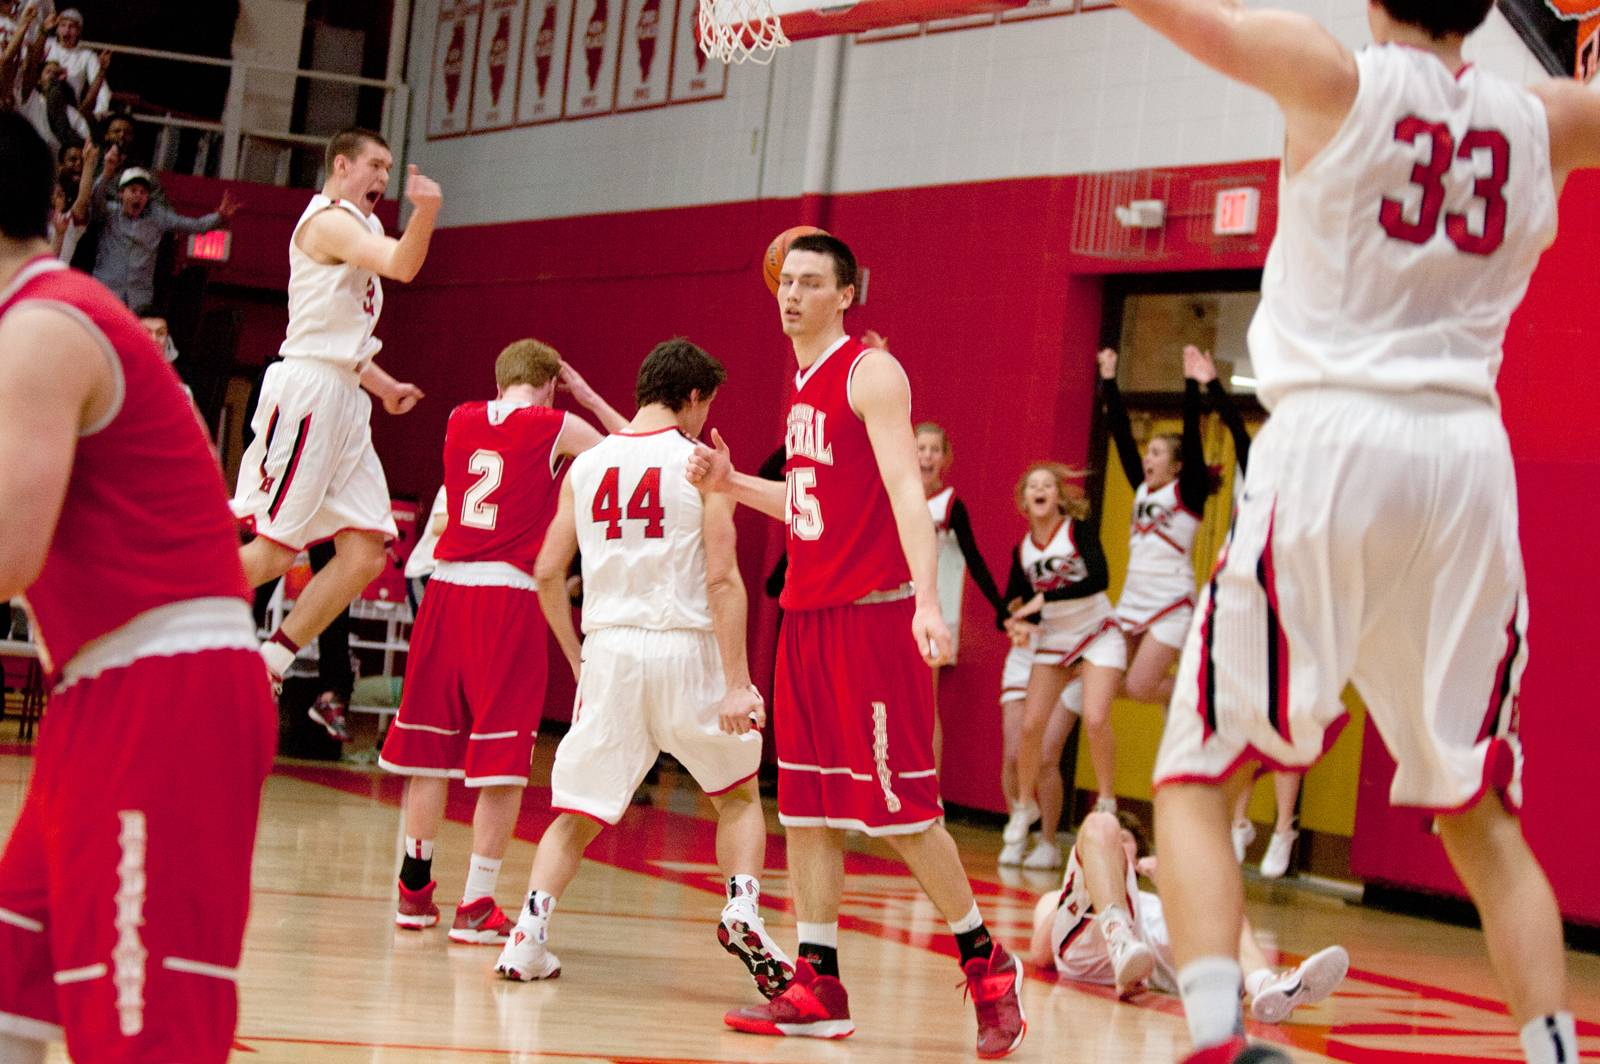 Hinsdale Central buzzer-beater ousts Naperville Central